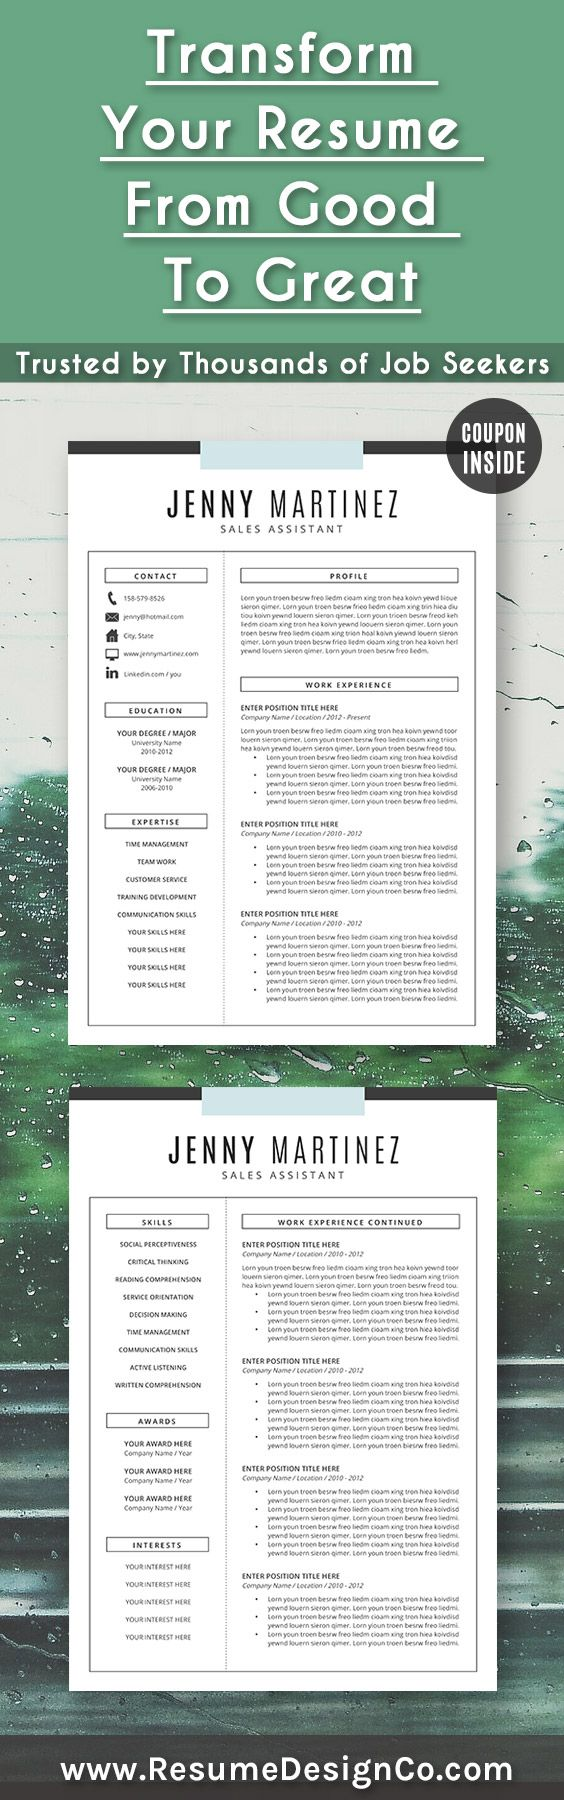 resume templates free word 2010%0A Transform your resume from good to great  Trusted by thousands of job  seekers  ResumeDesignCo    Cv Templates WordResume